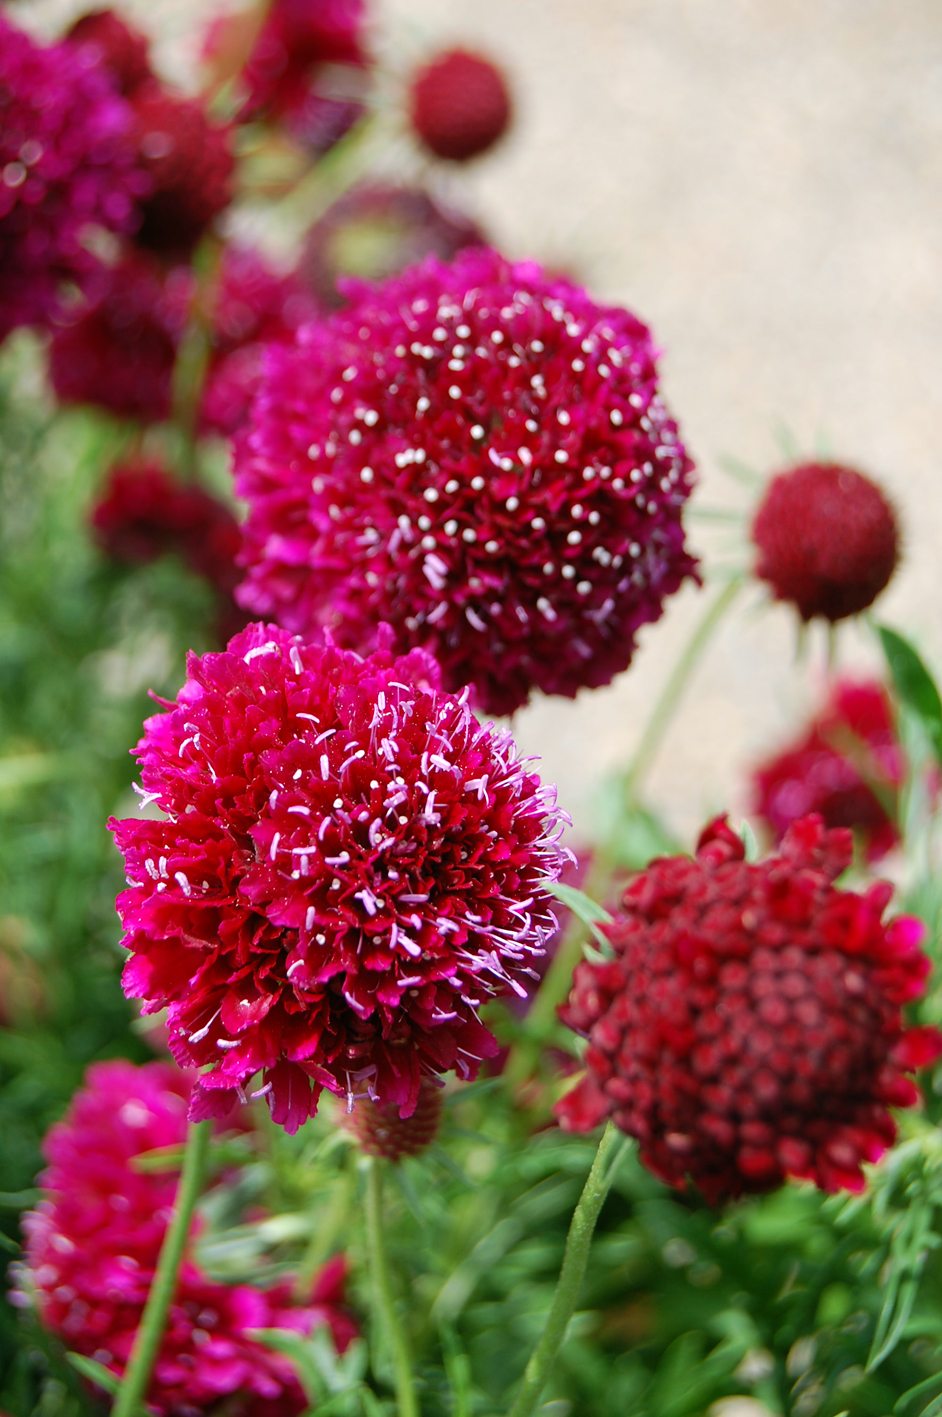 Driakiew szlachetna Crimson Cushion- Scabiosa Crimson Cushion